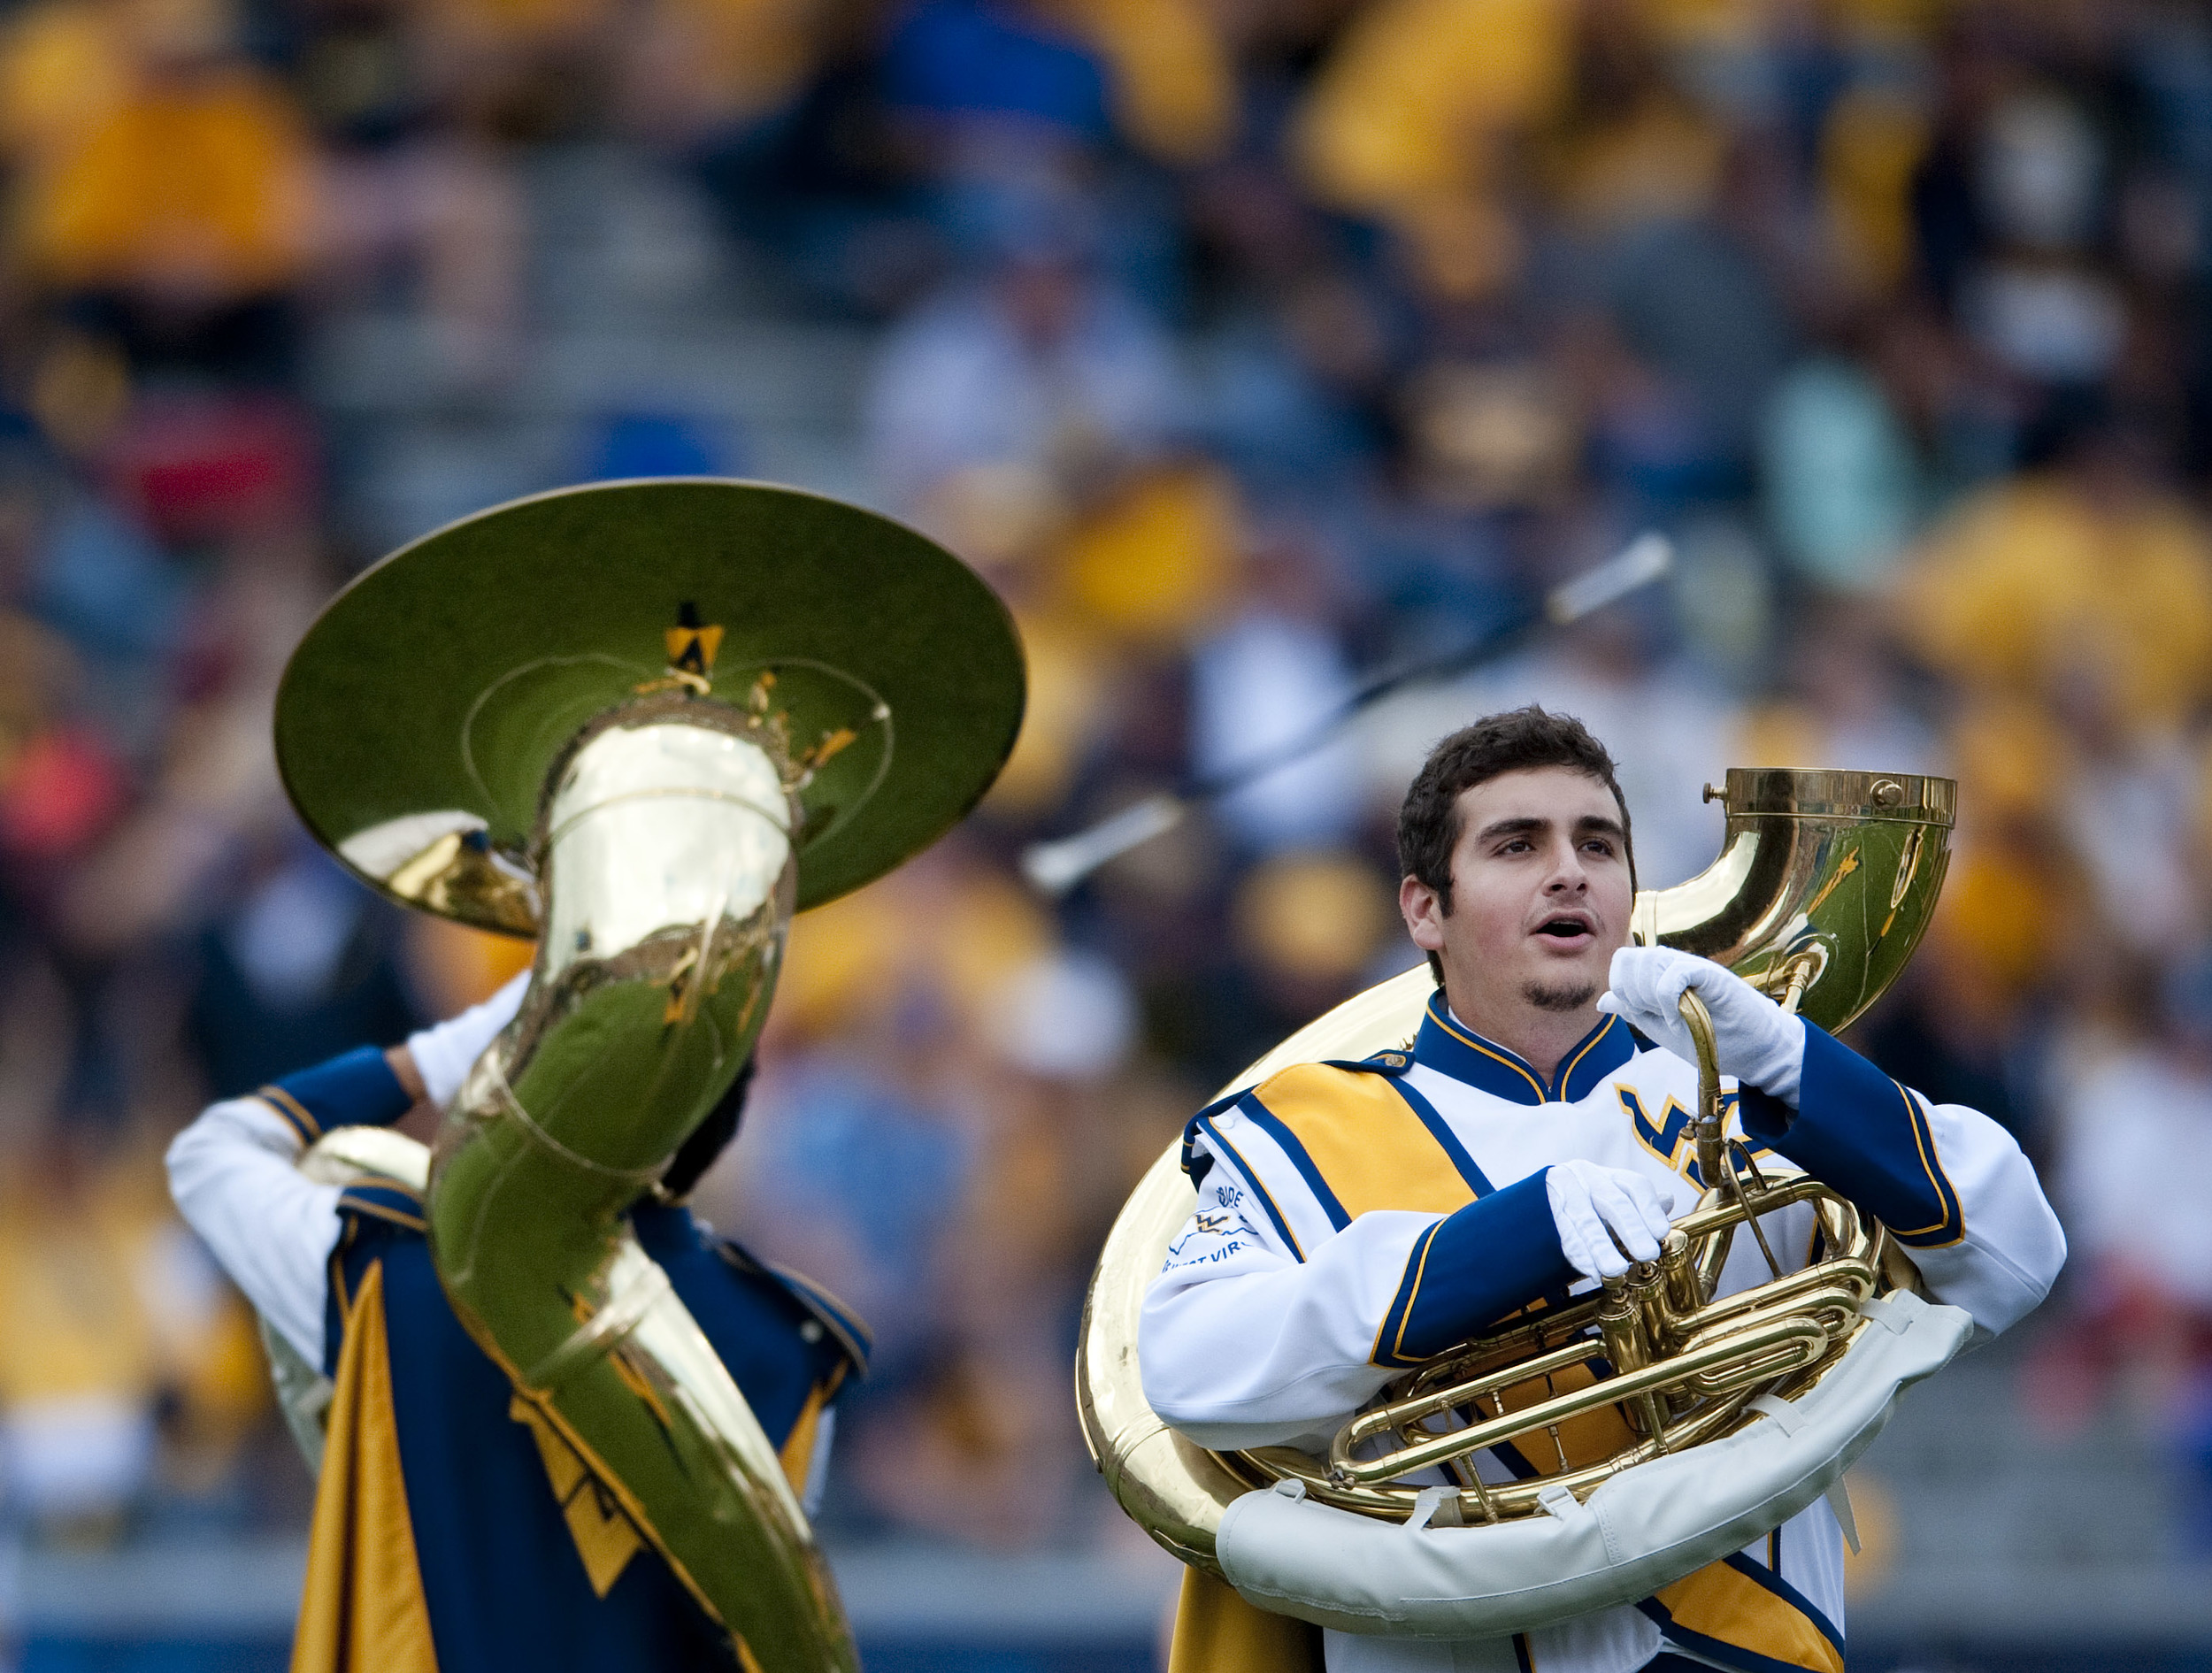 A West Virginia tuba player sings a march after losing his horn top on Saturday, Sept. 12, 2015 at Milan Puskar Stadium in Morgantown, W.Va. WVU won 41-17 over Liberty.